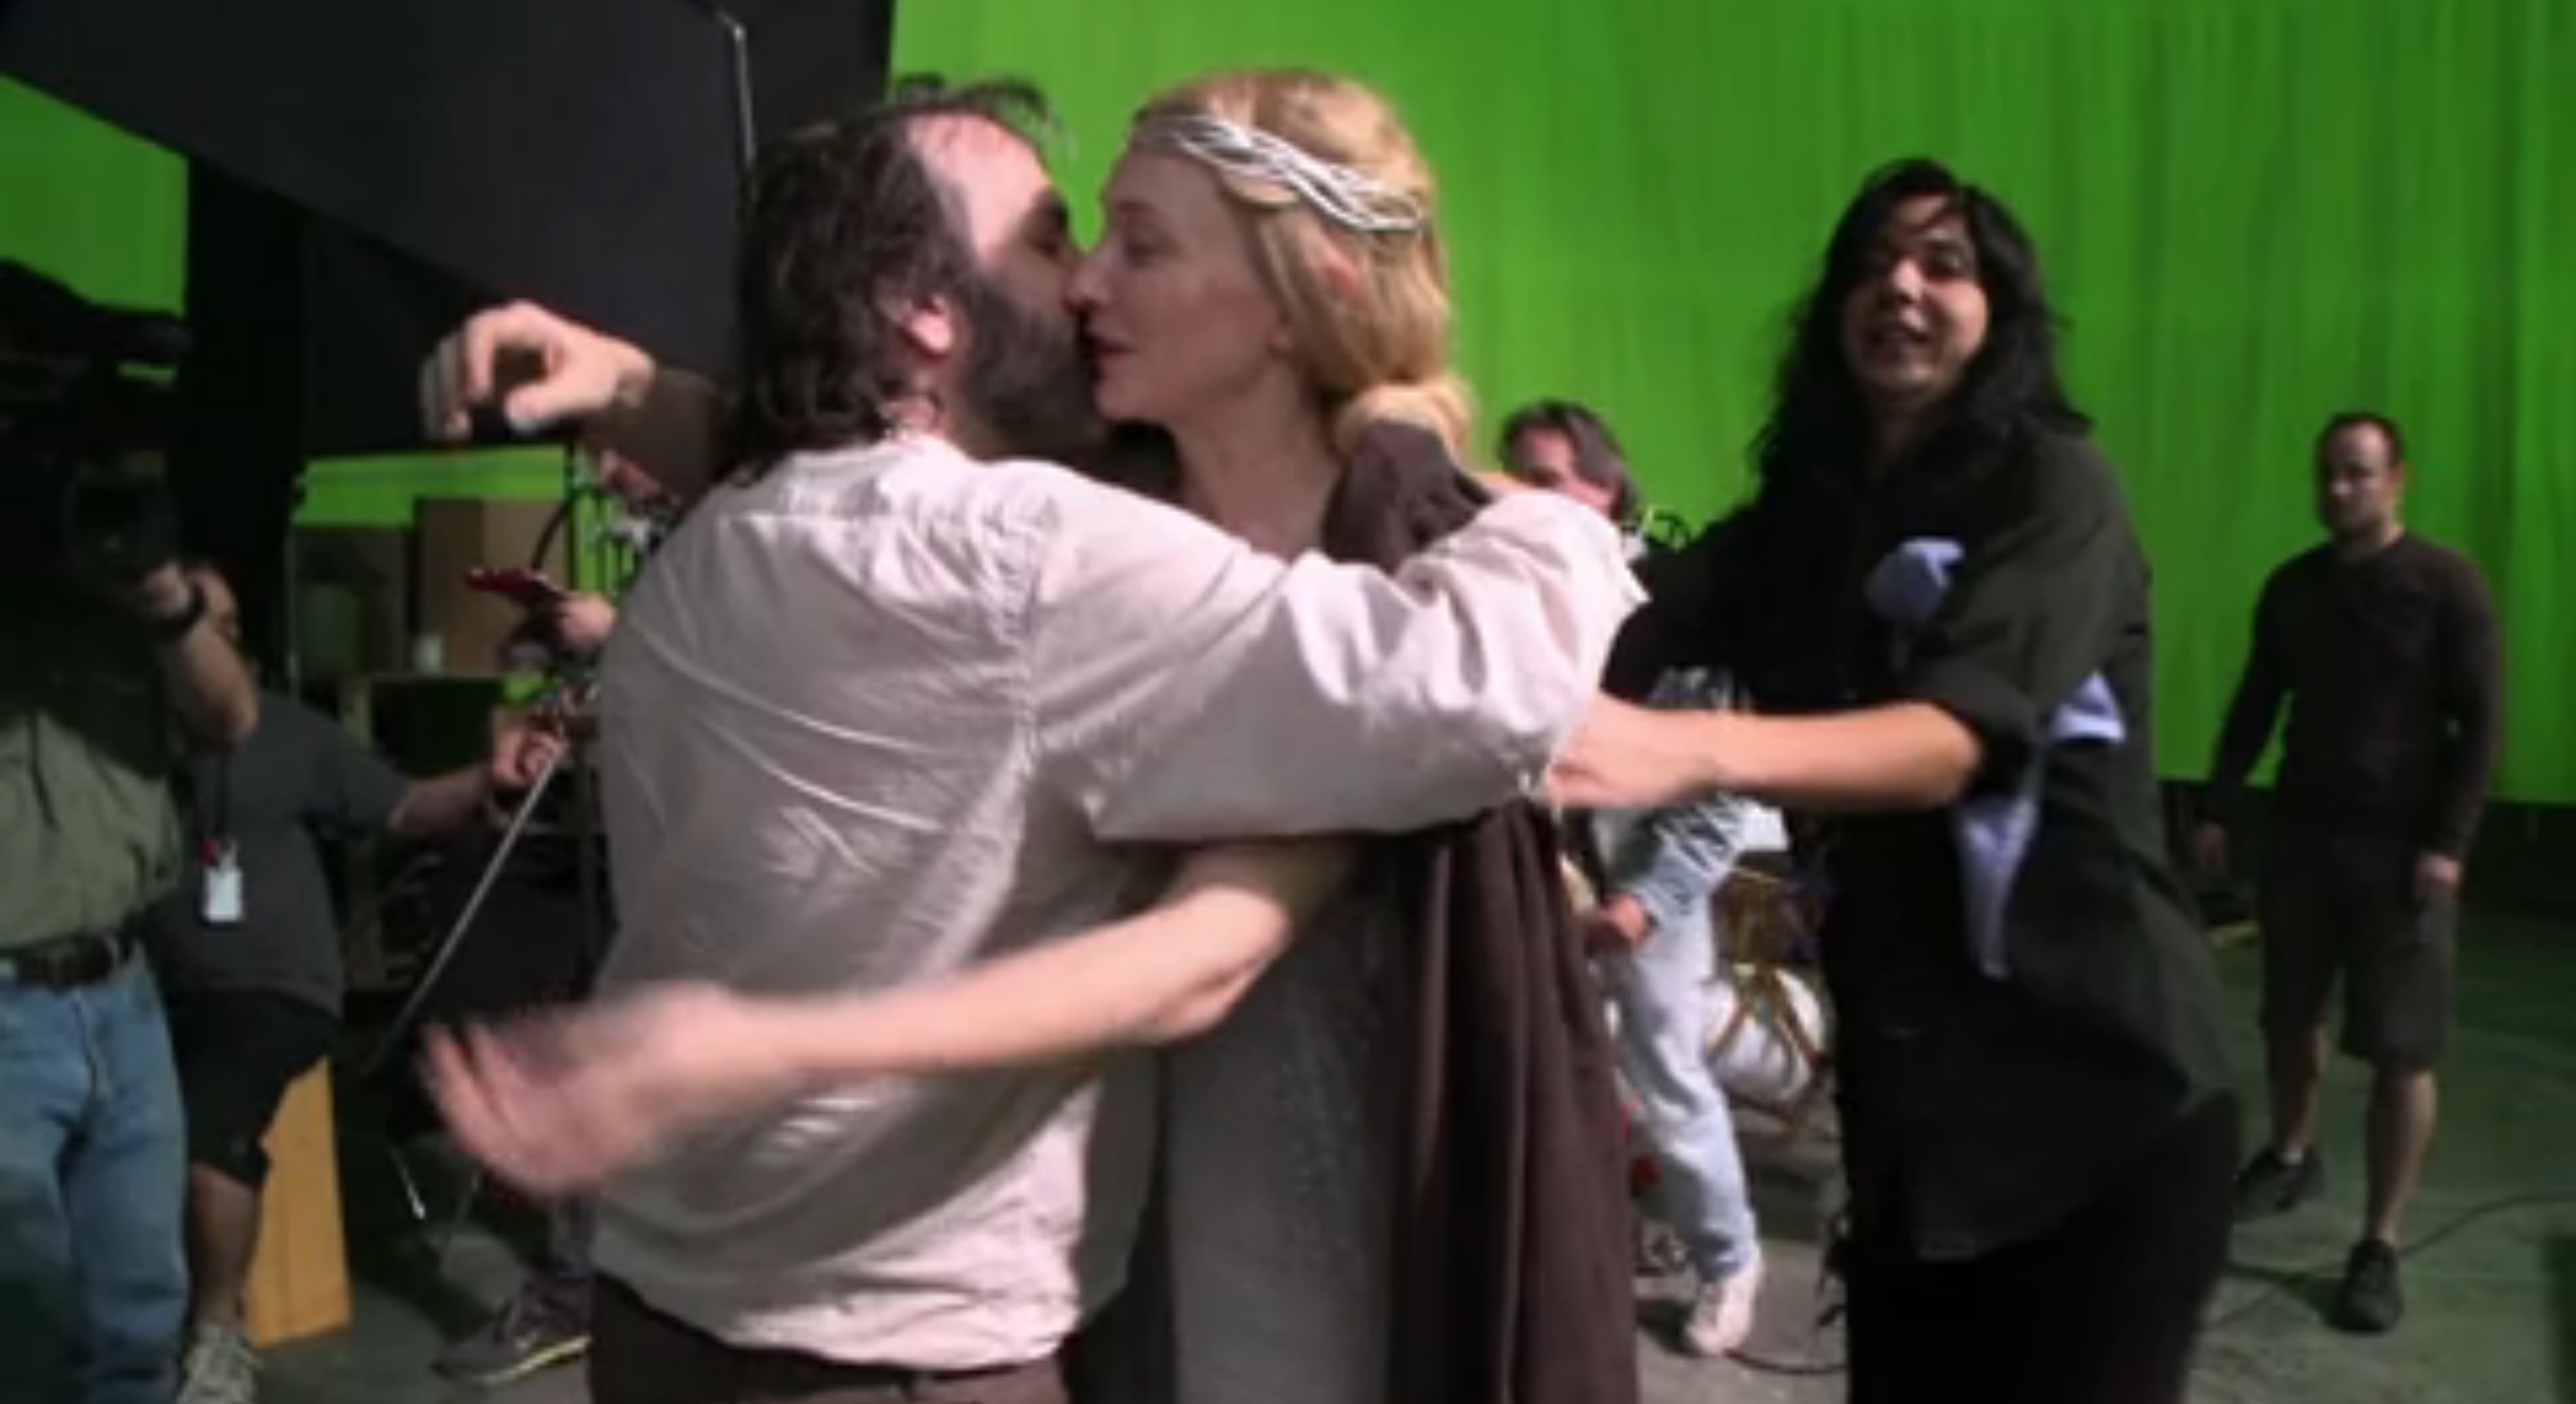 pj and cate